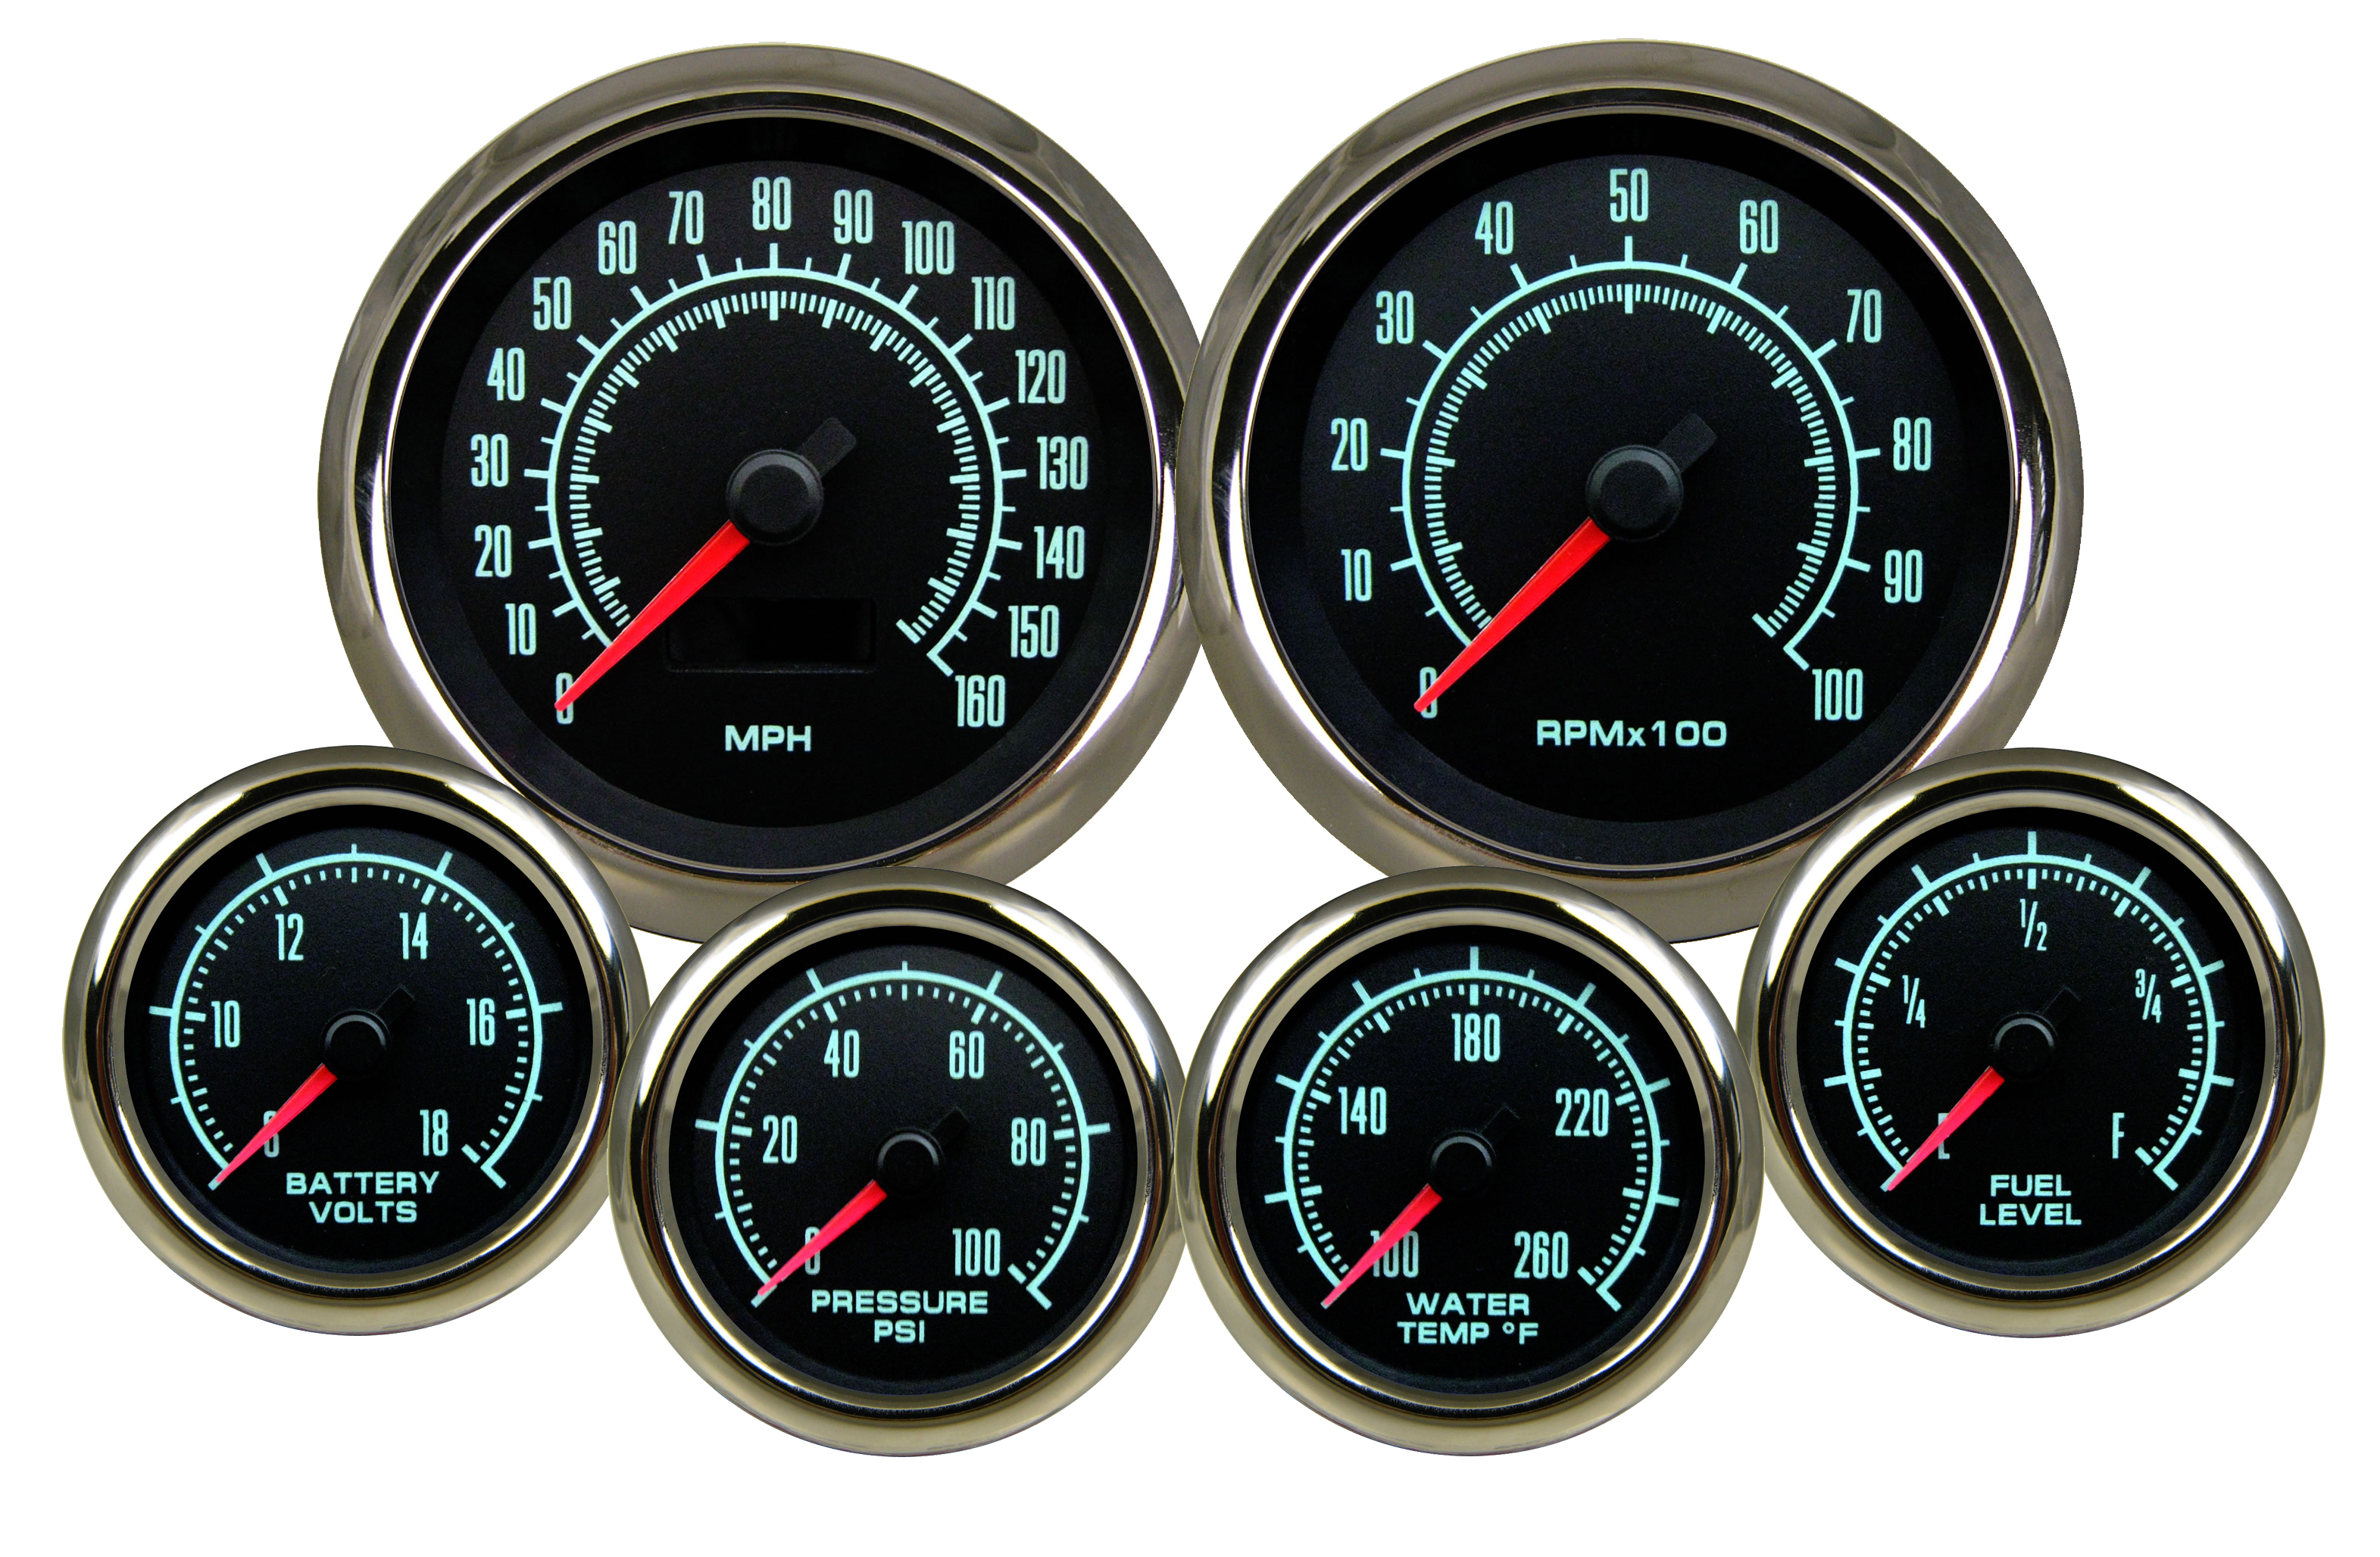 Why doesnt anyone make repro electronic speedomeeters? - LS1TECH ...